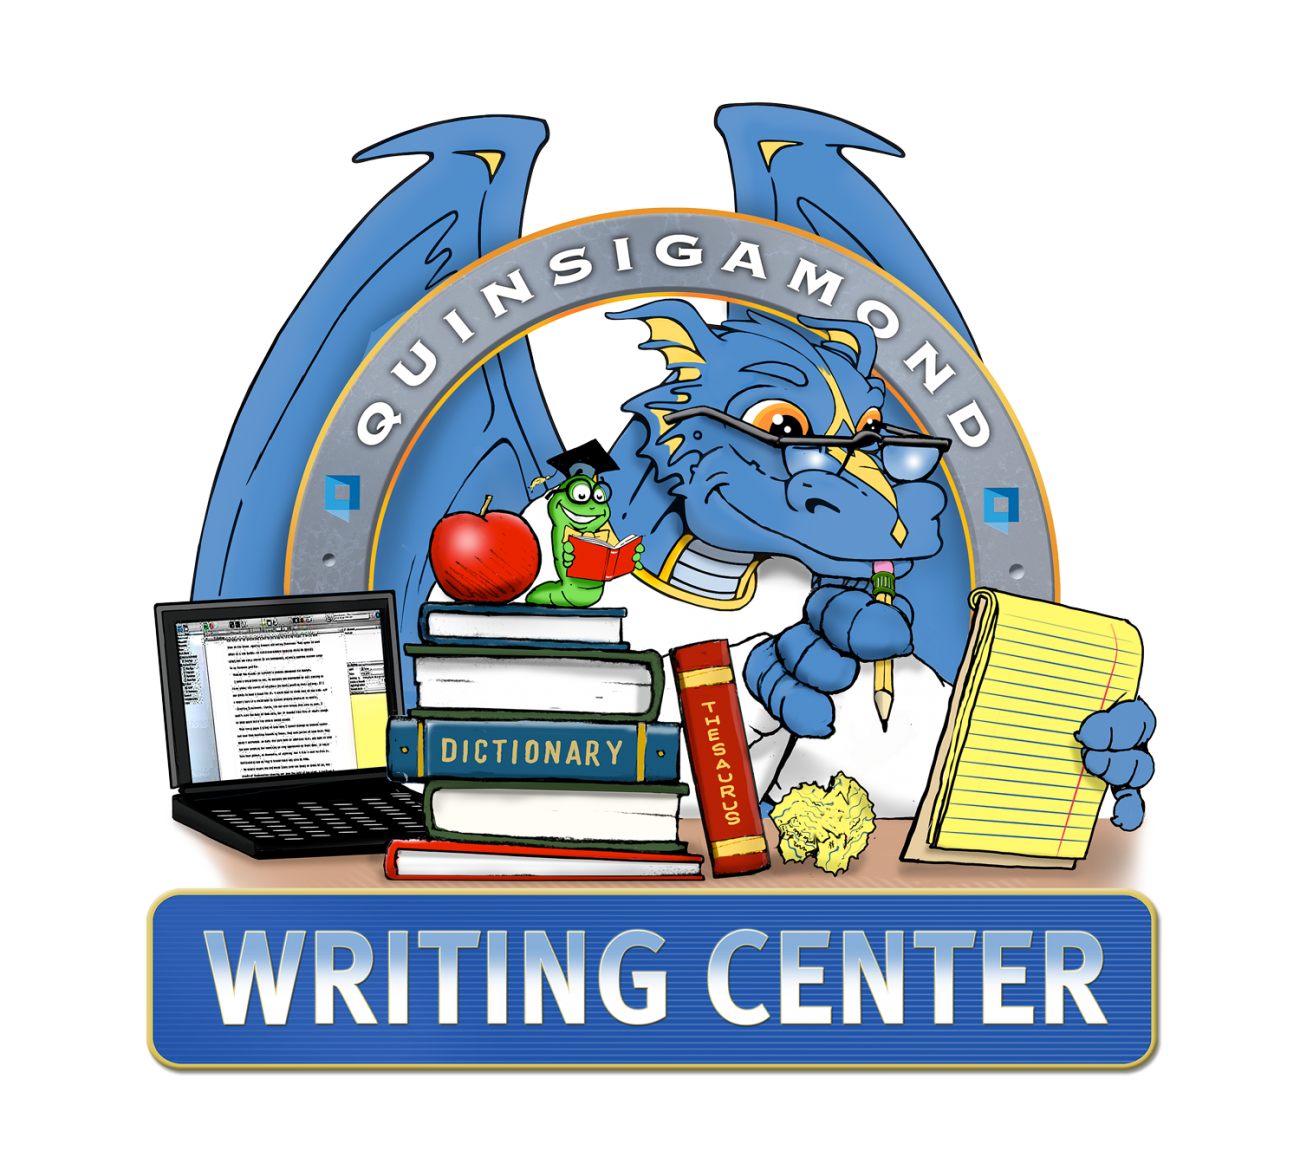 Desk clipart writing center. Logos quinsigamond community college